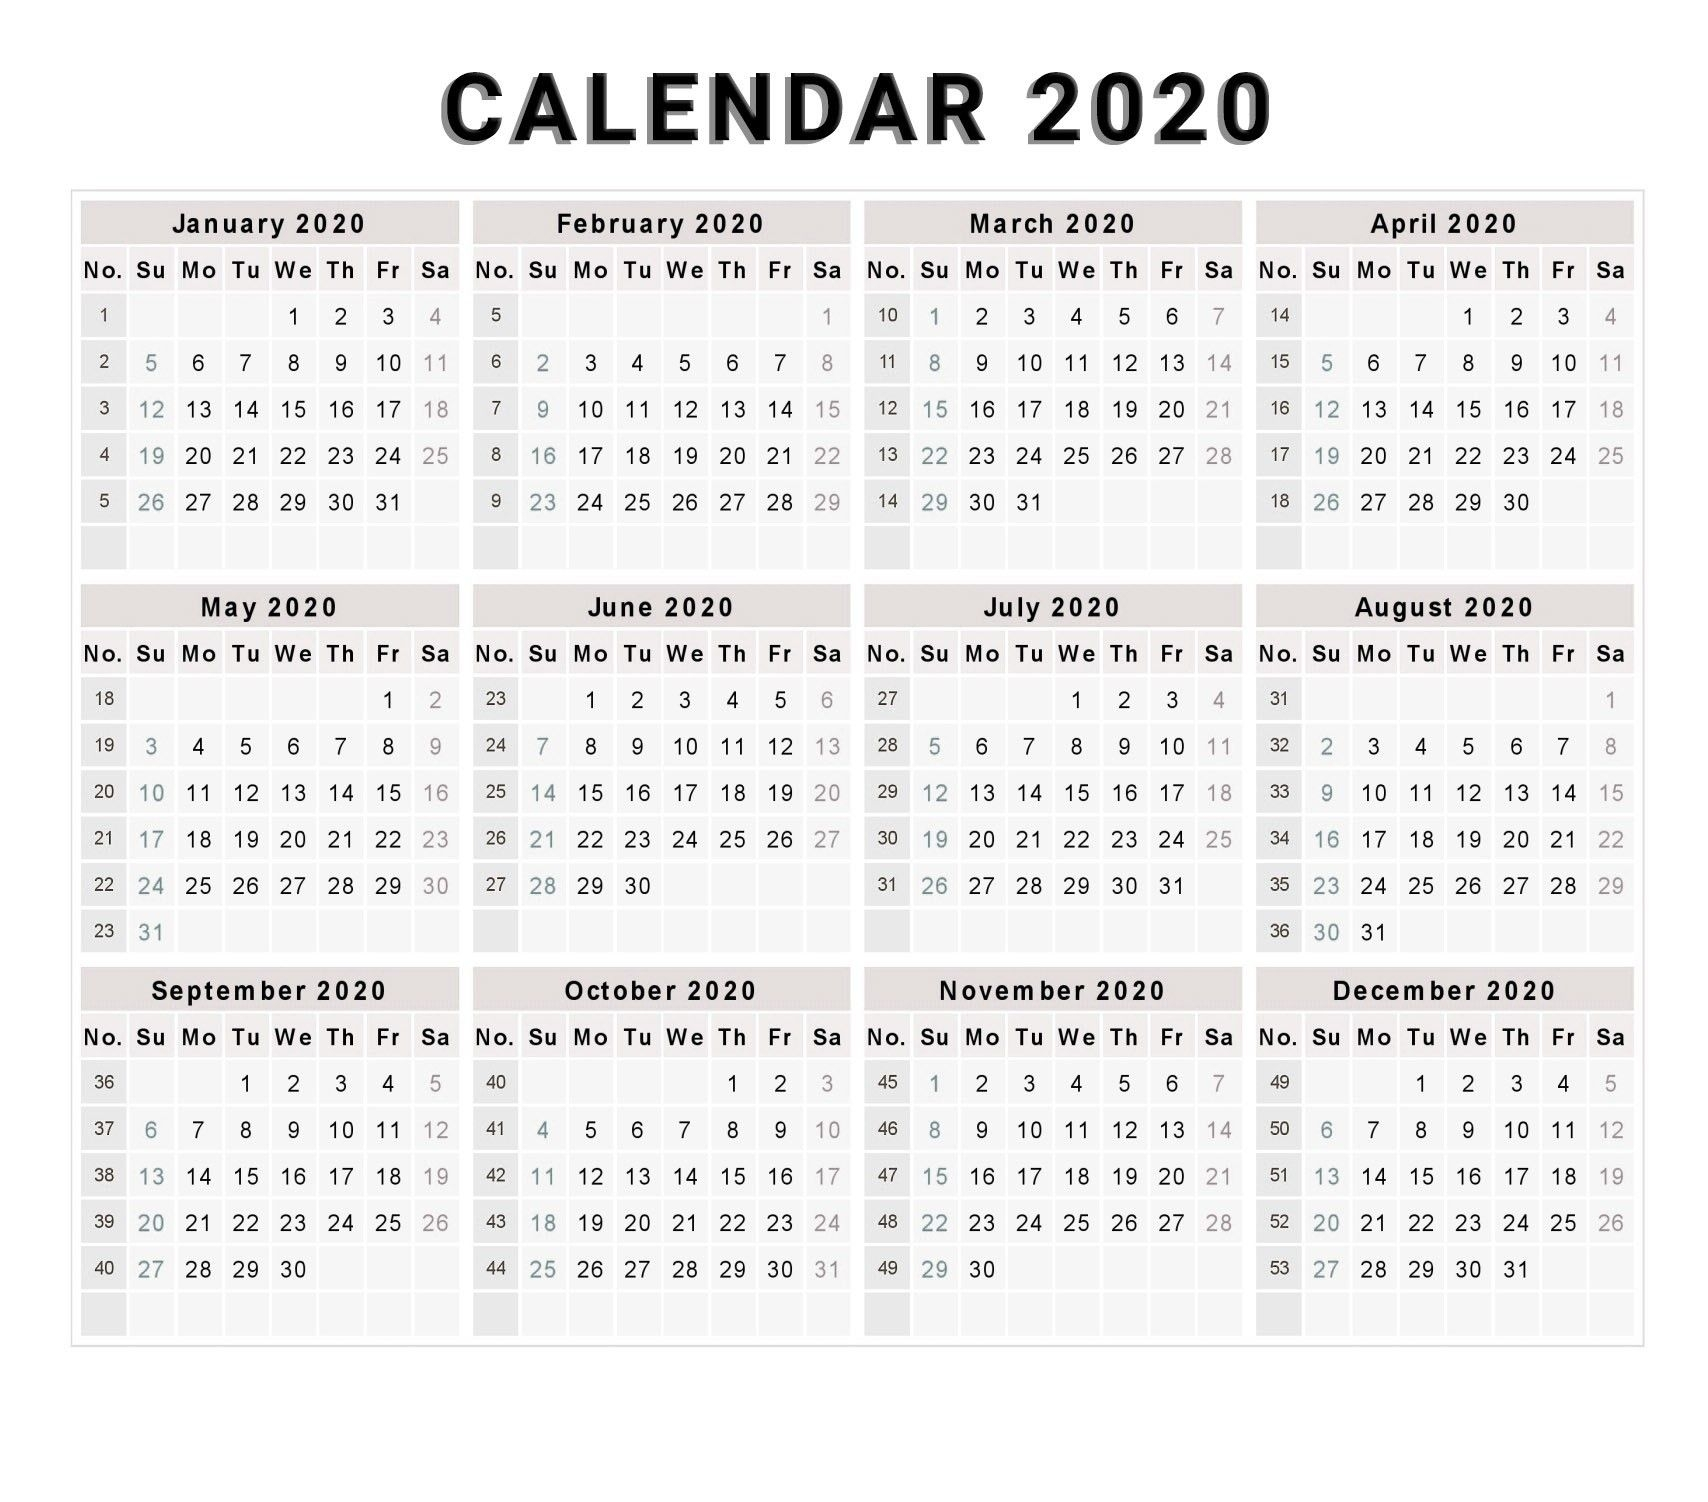 Calendar 2020 Free Printable Calendar 2020 Free 2020 in 2020 Free Year Printable Calendars Without Downloading